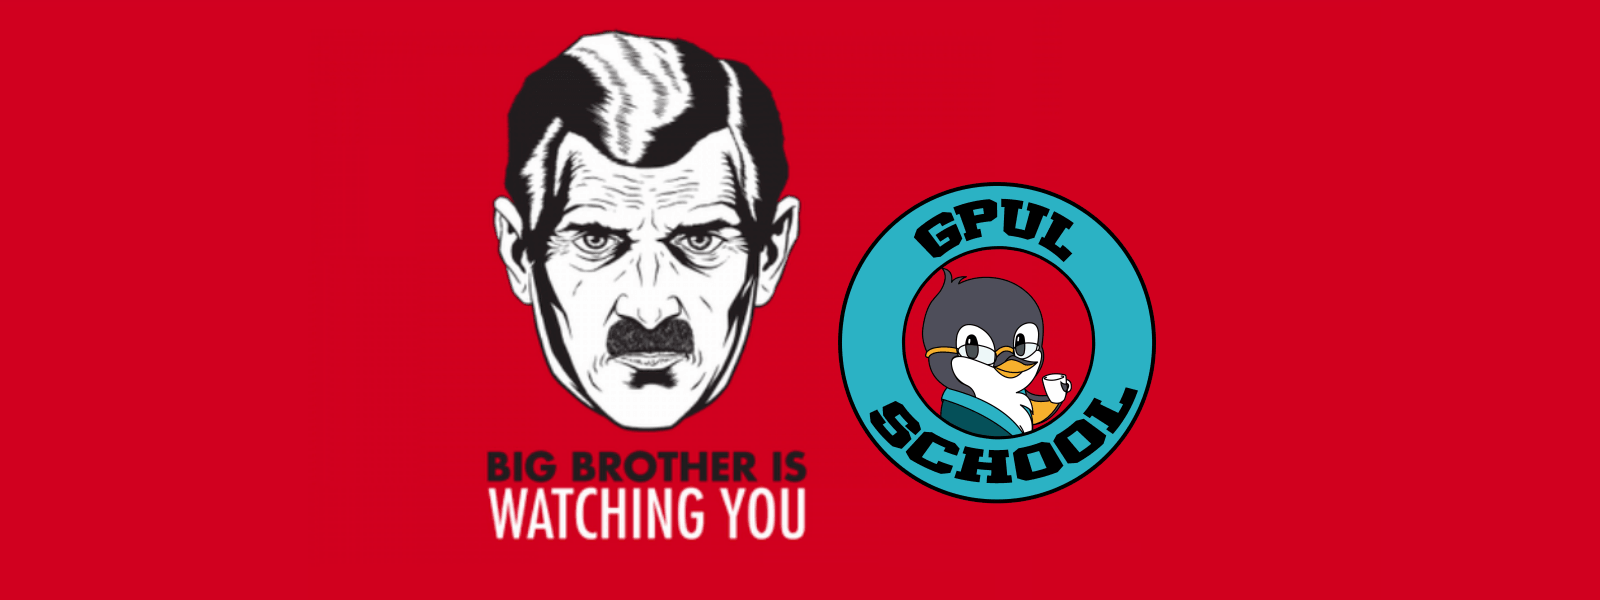 Portada. Big brother is watching you. Logo de gpul school